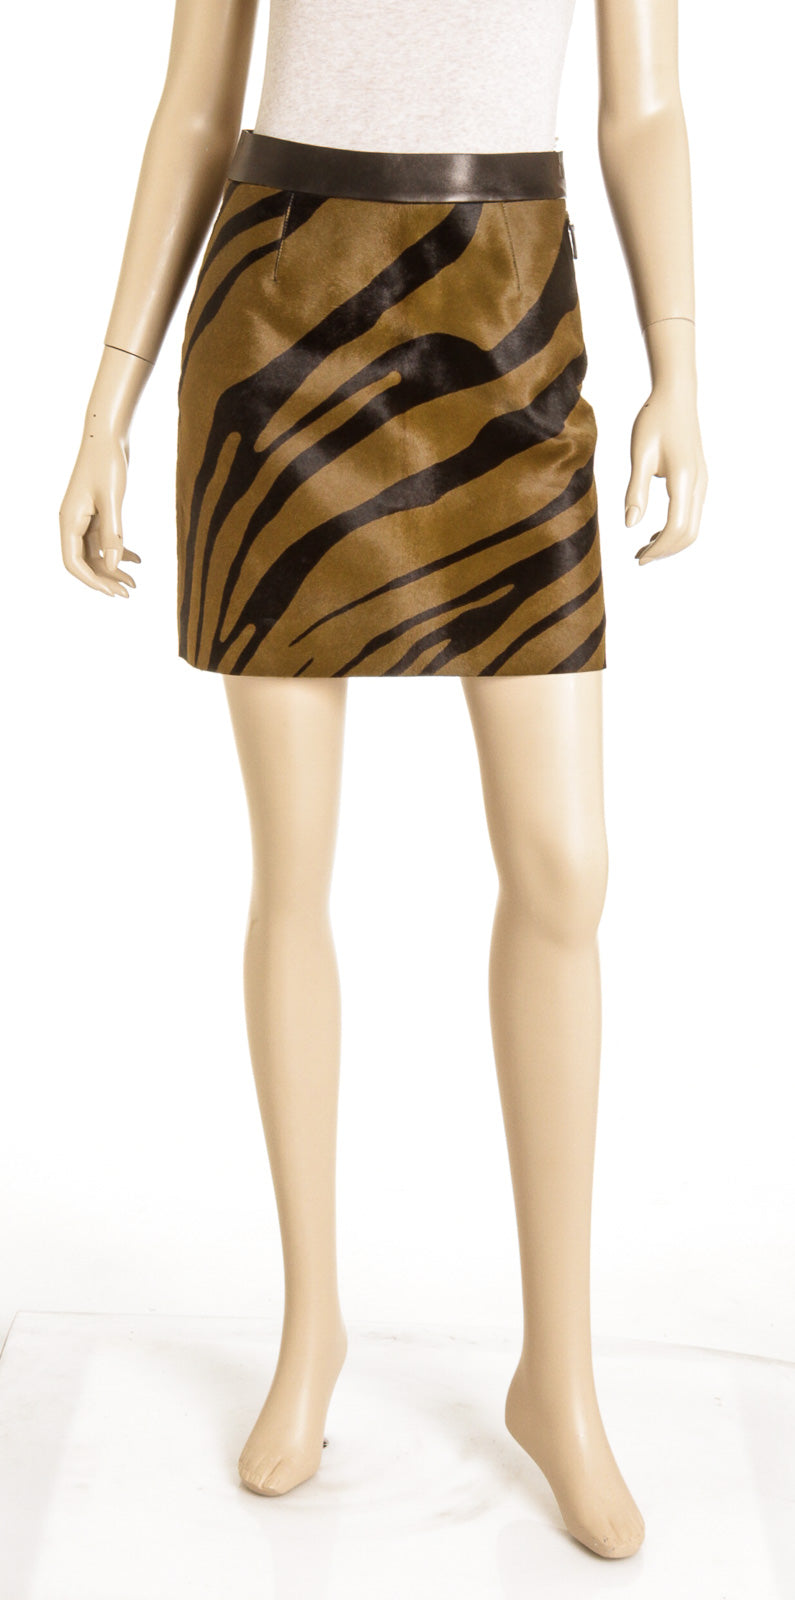 Roberto Cavalli Green And Black Calf Hair And Leather Zebra Print A-Line Skirt NEW Size 38